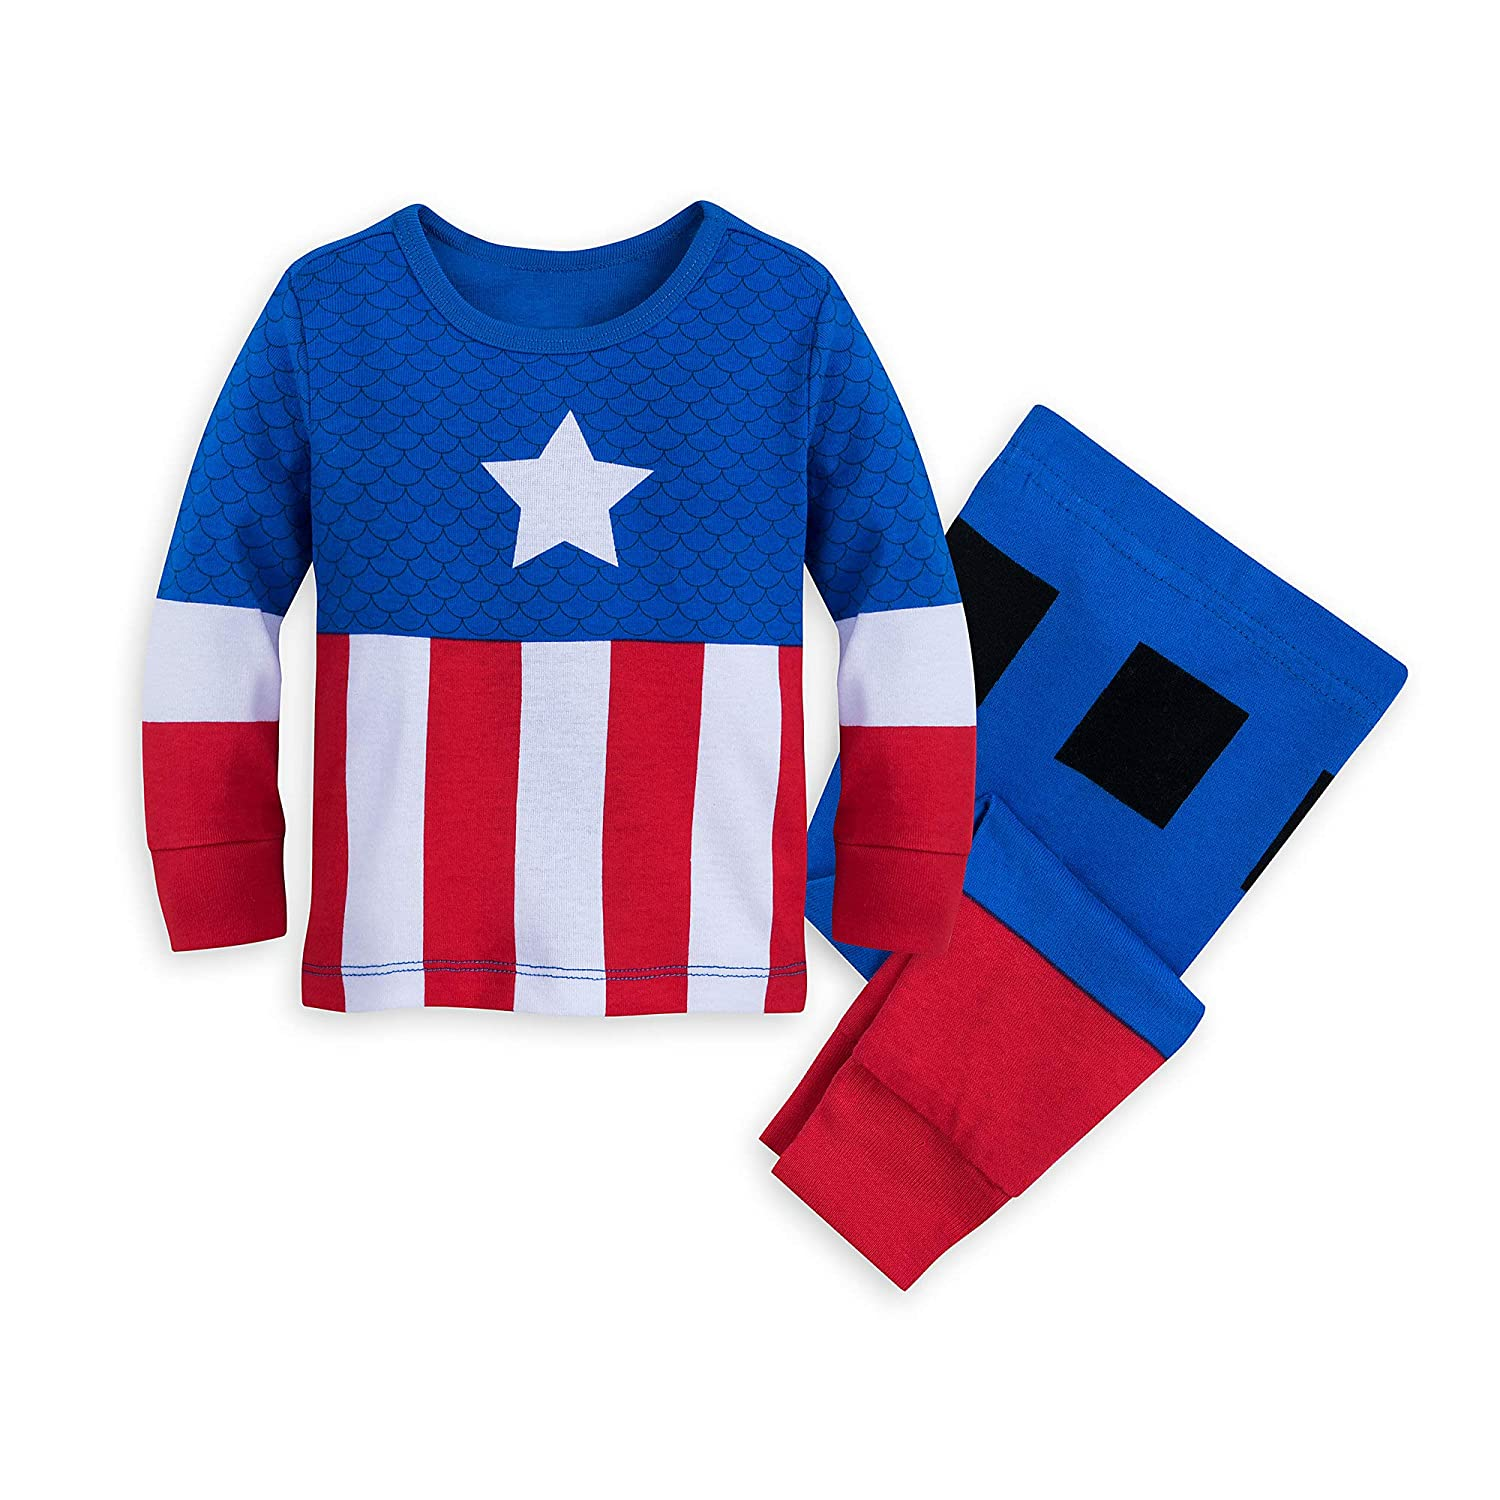 Marvel Captain America Costume PJ PALS for Baby Size 18-24 MO Multi Disney 40420573911159000354